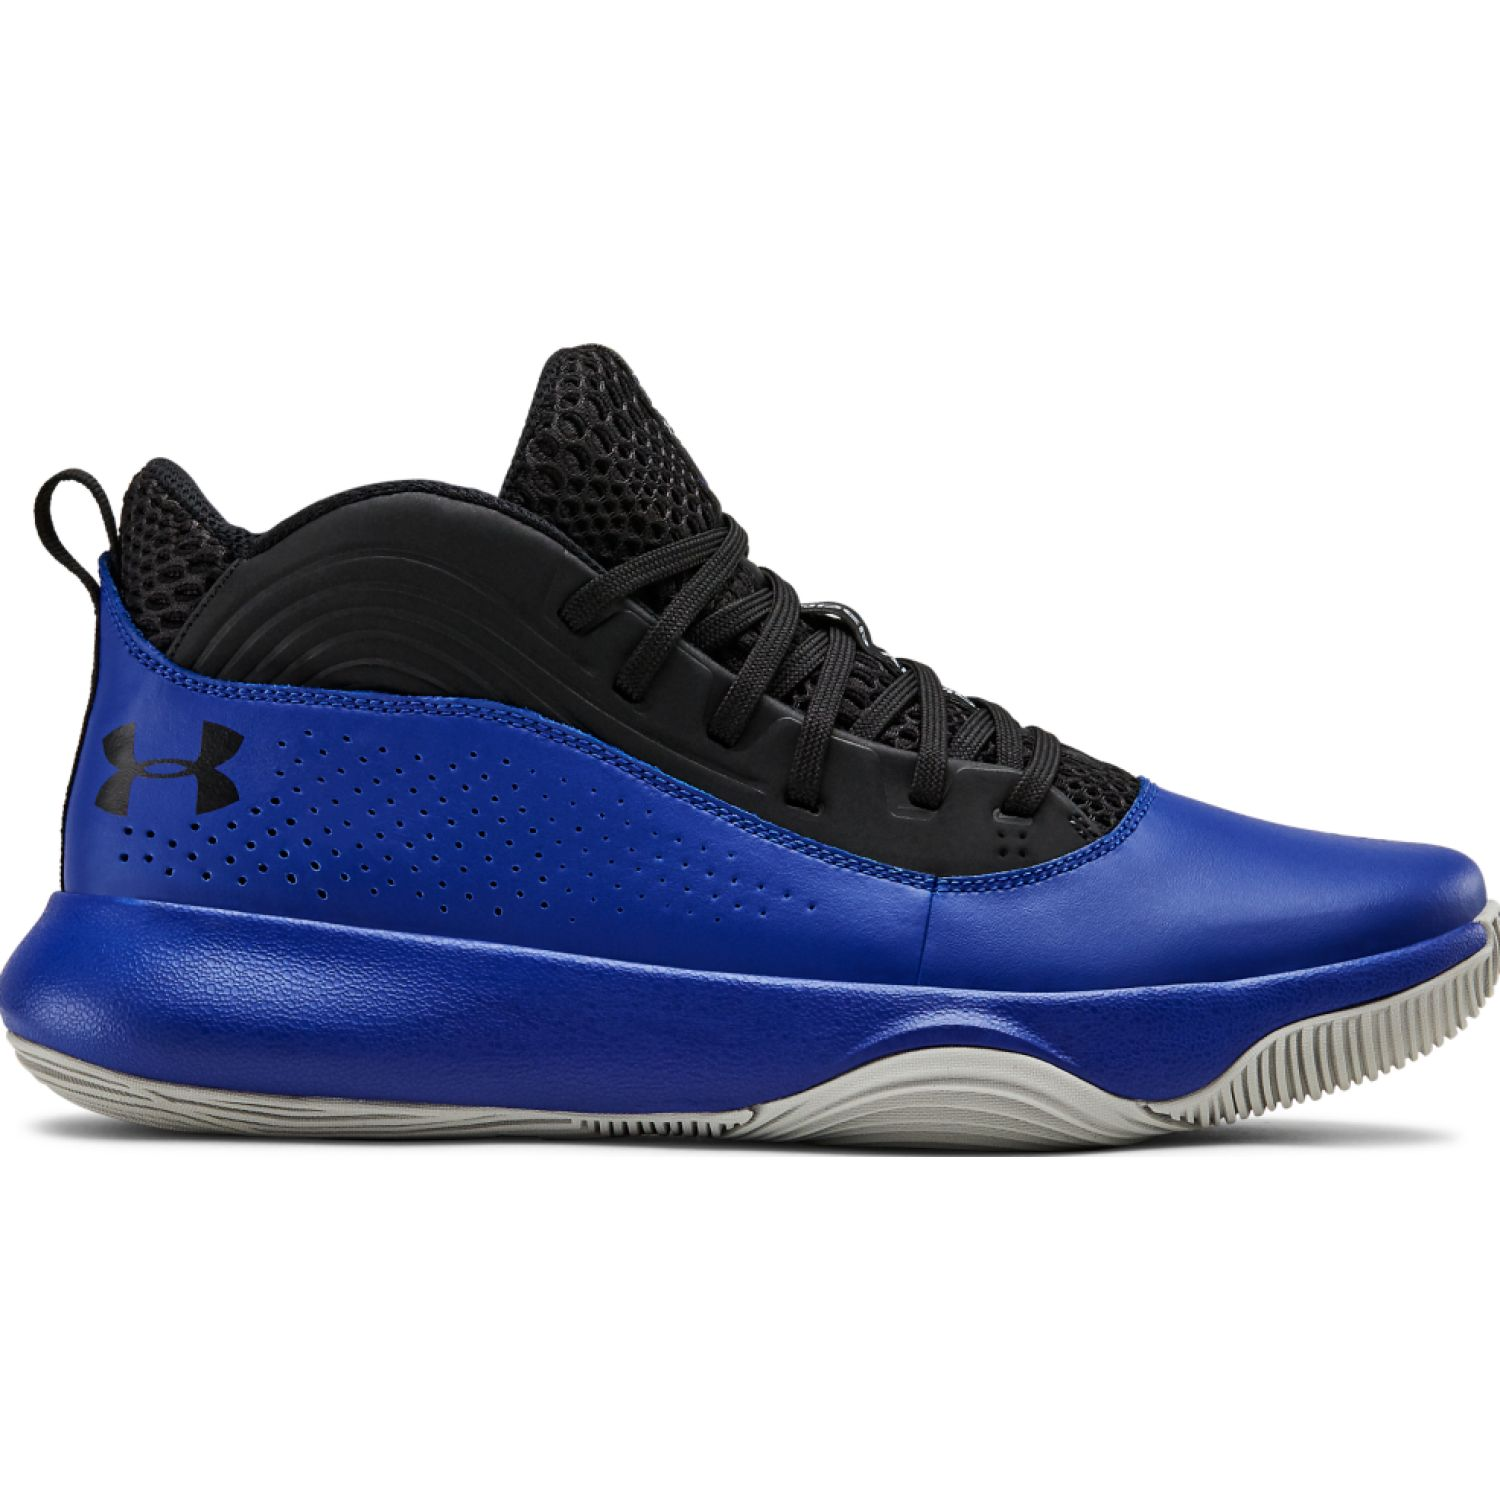 Under Armour ua lockdown 4 Azul / negro Hombres